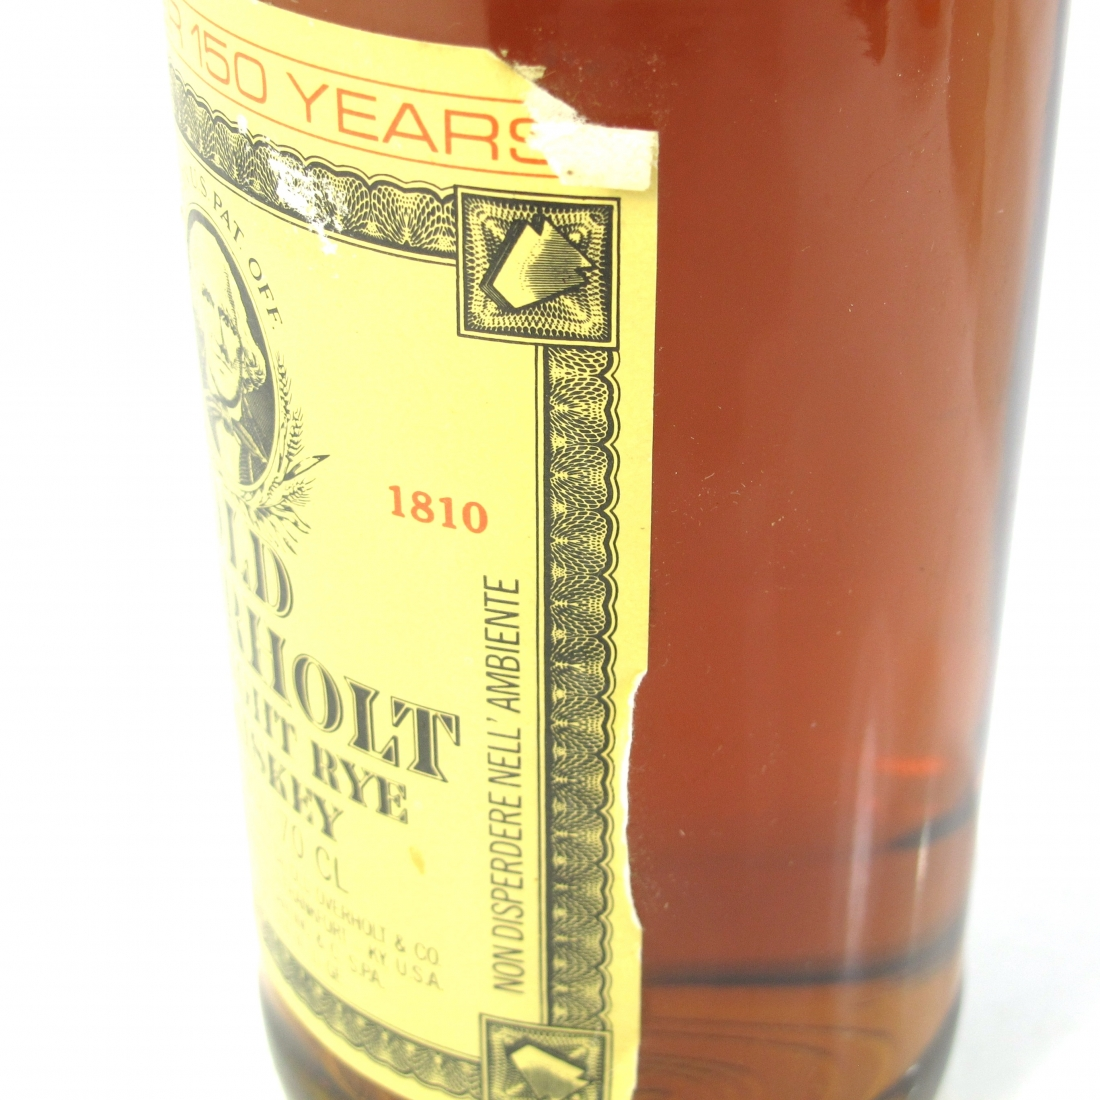 Old Overholt Straight Rye Whiskey 1990s